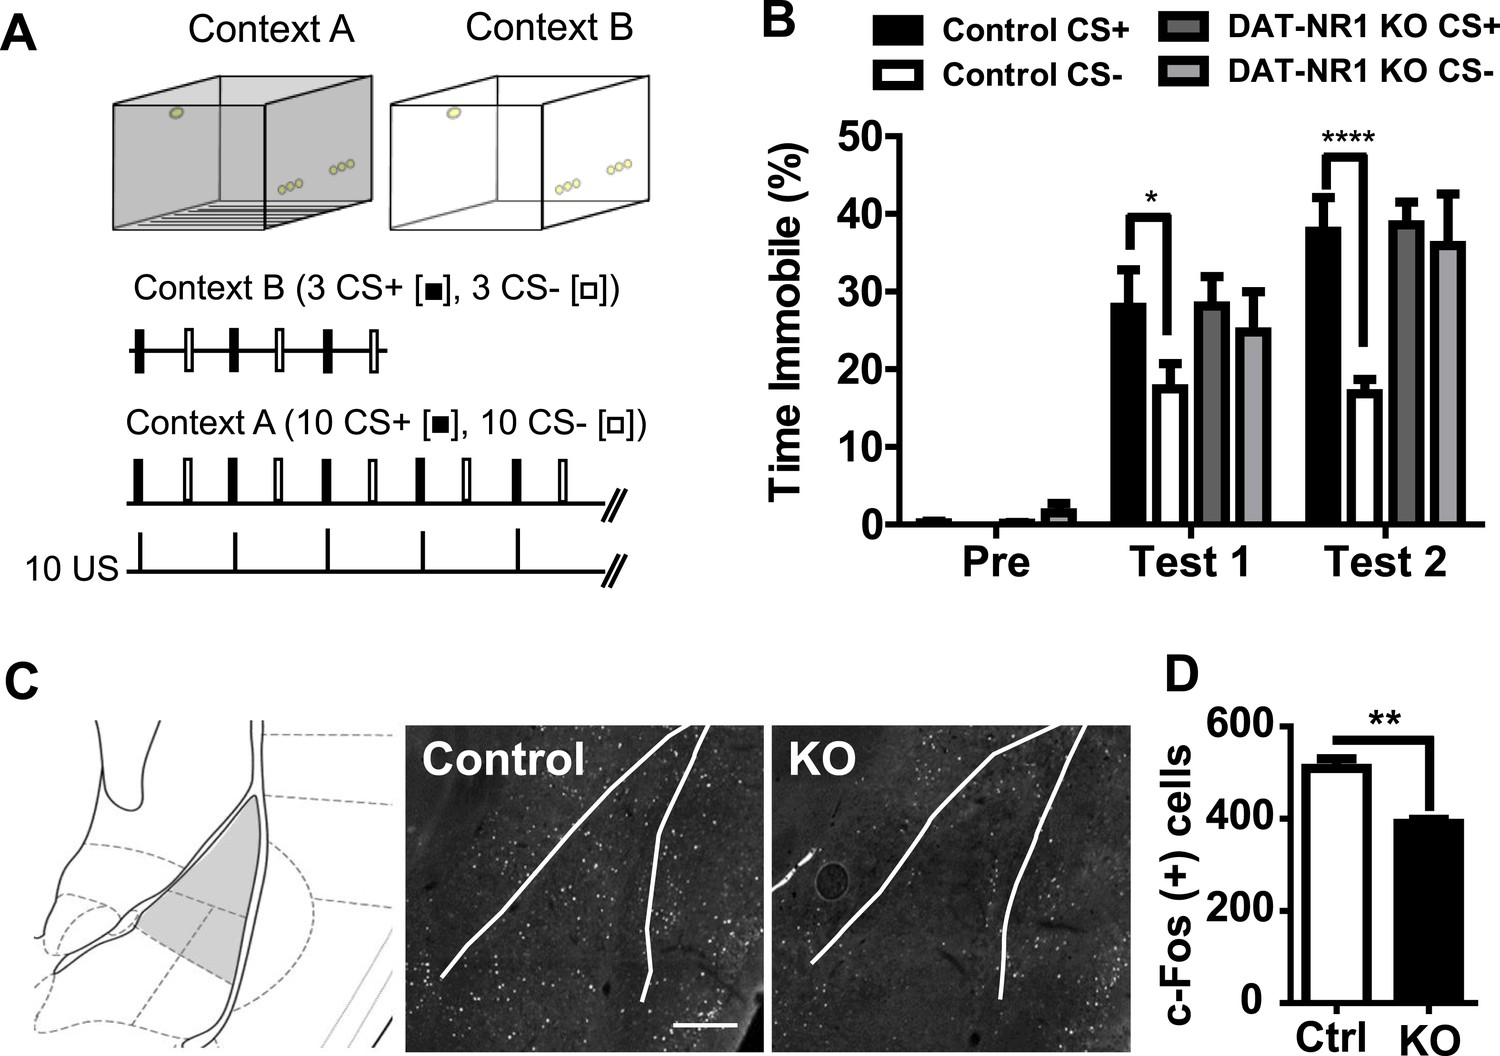 Impaired Fear Discrimination And C Fos Activation In The LA Of DAT NR1 KO Mice